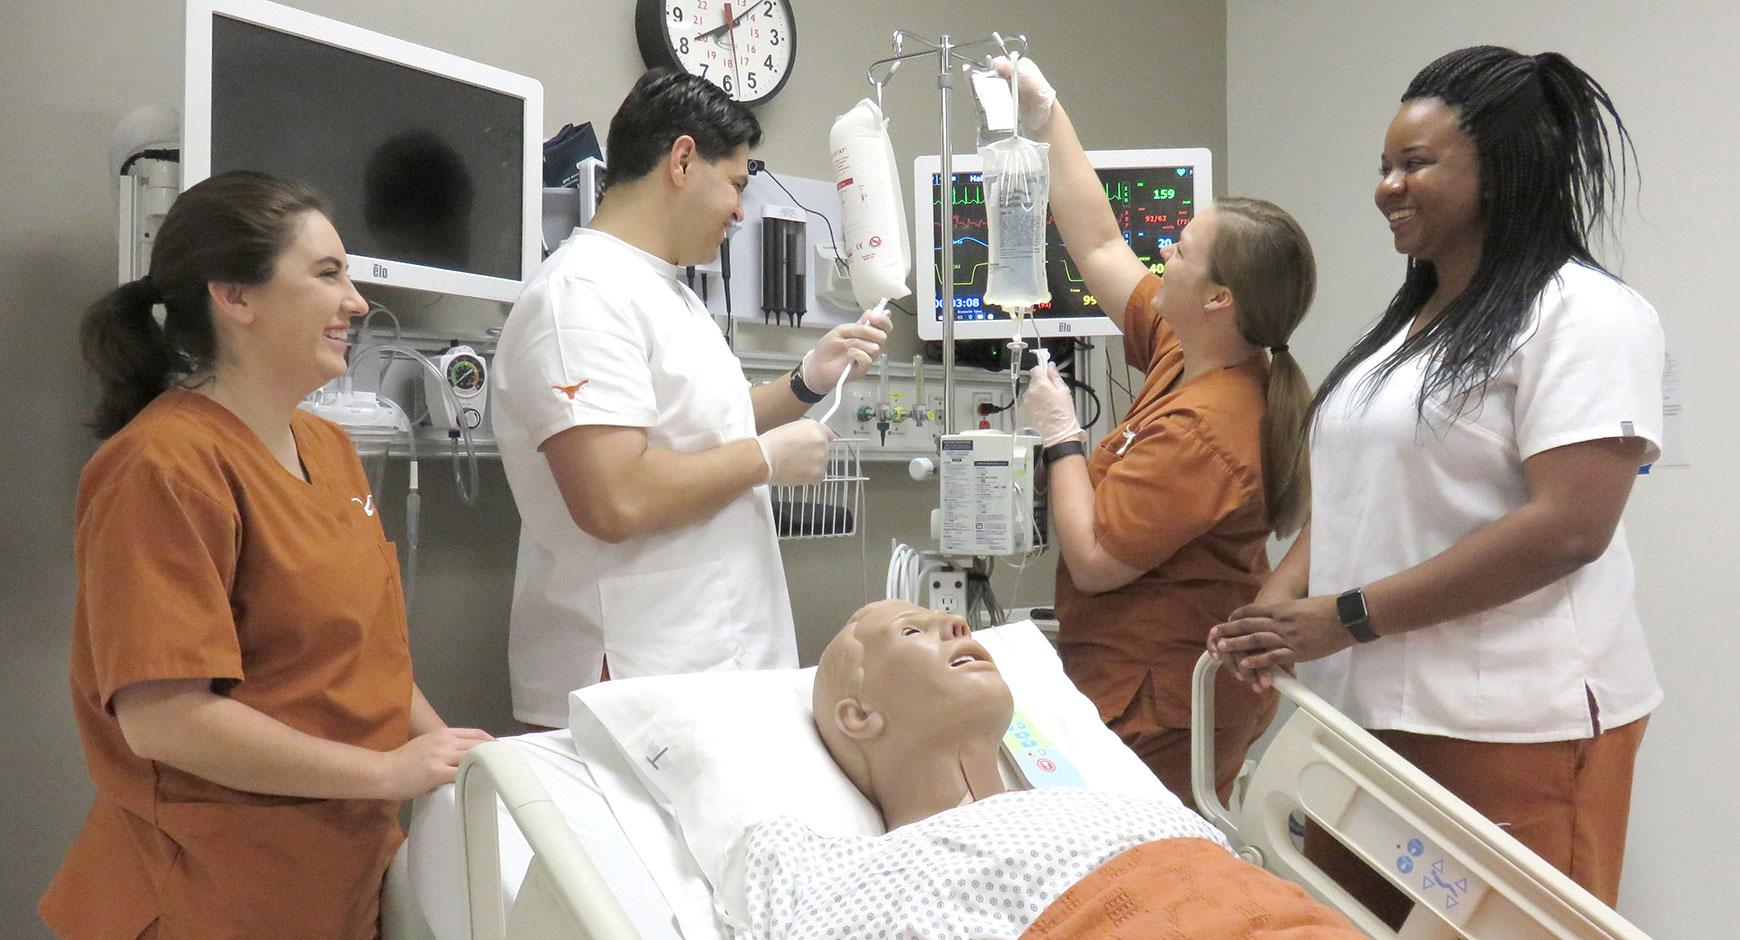 Nursing students receive instruction